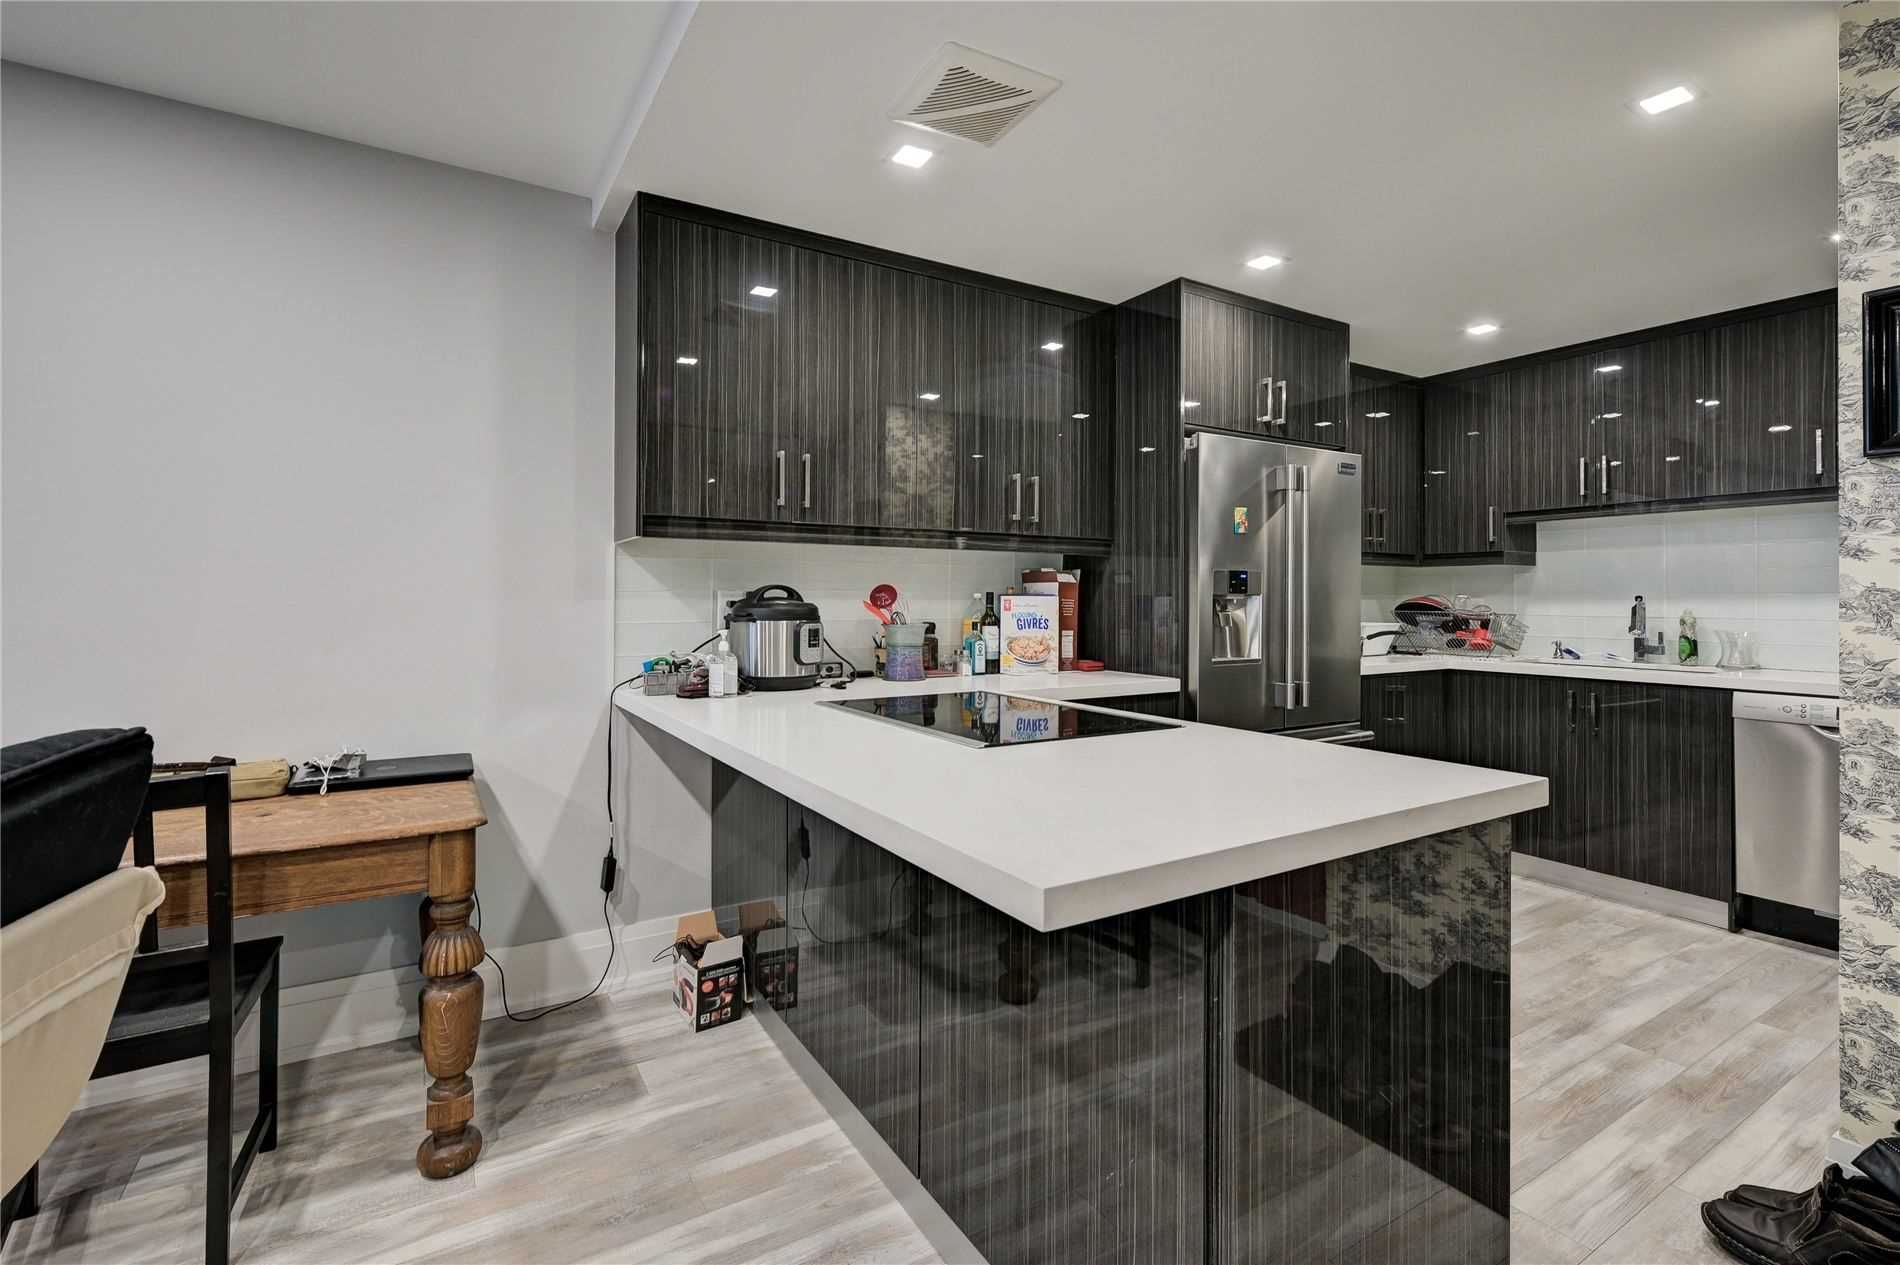 Main Photo: 301 60 Montclair Avenue in Toronto: Forest Hill South Condo for sale (Toronto C03)  : MLS®# C5103650